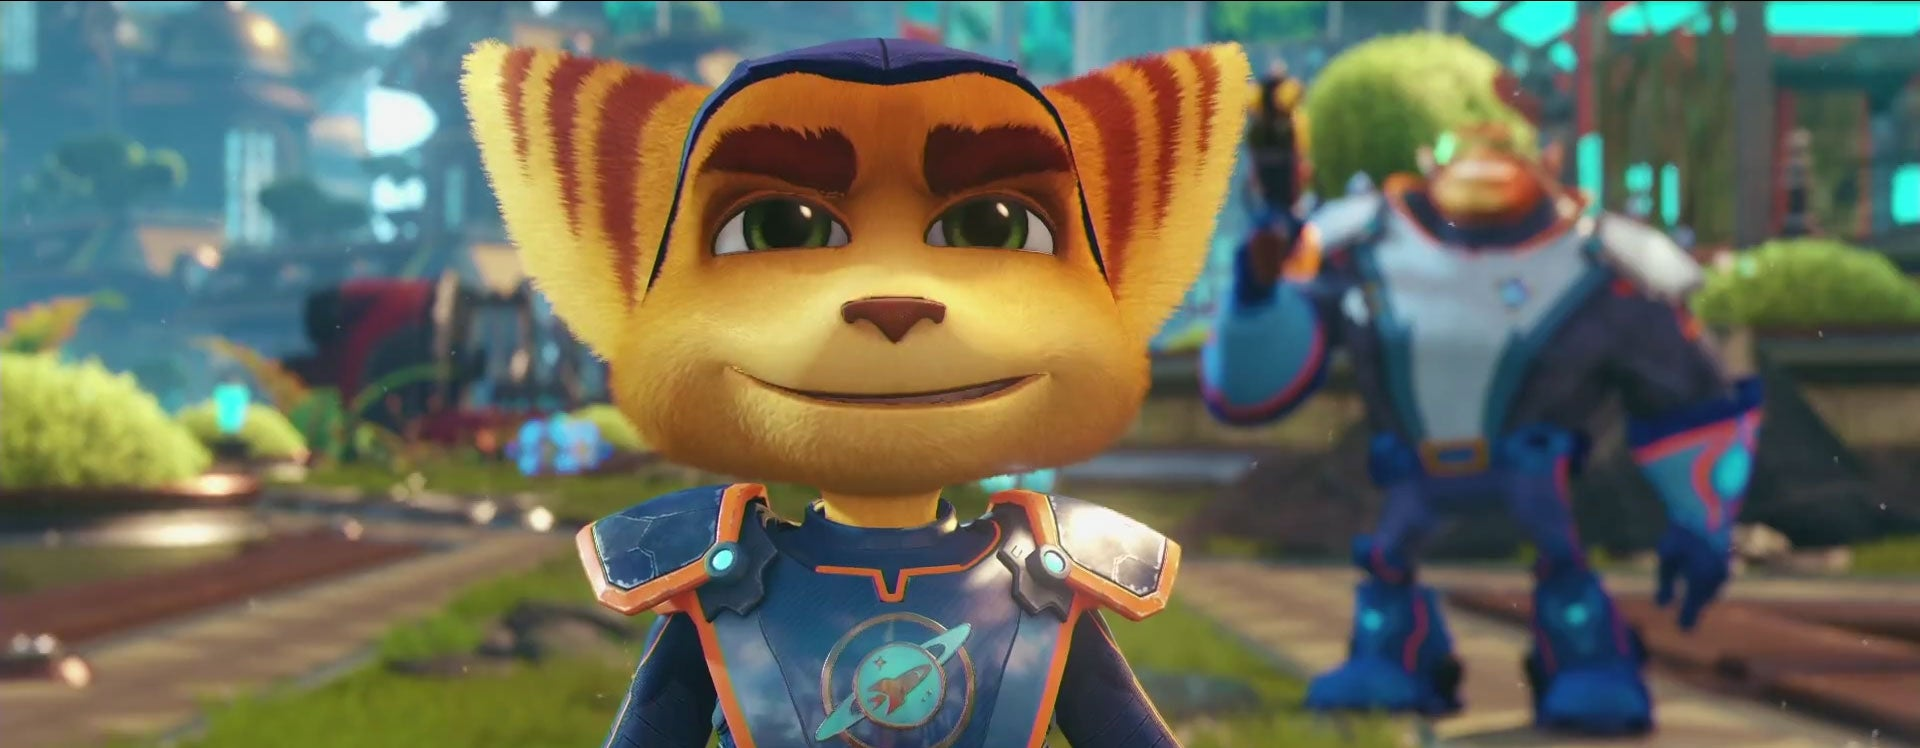 Ratchet & Clank PS4 Looks Amazing